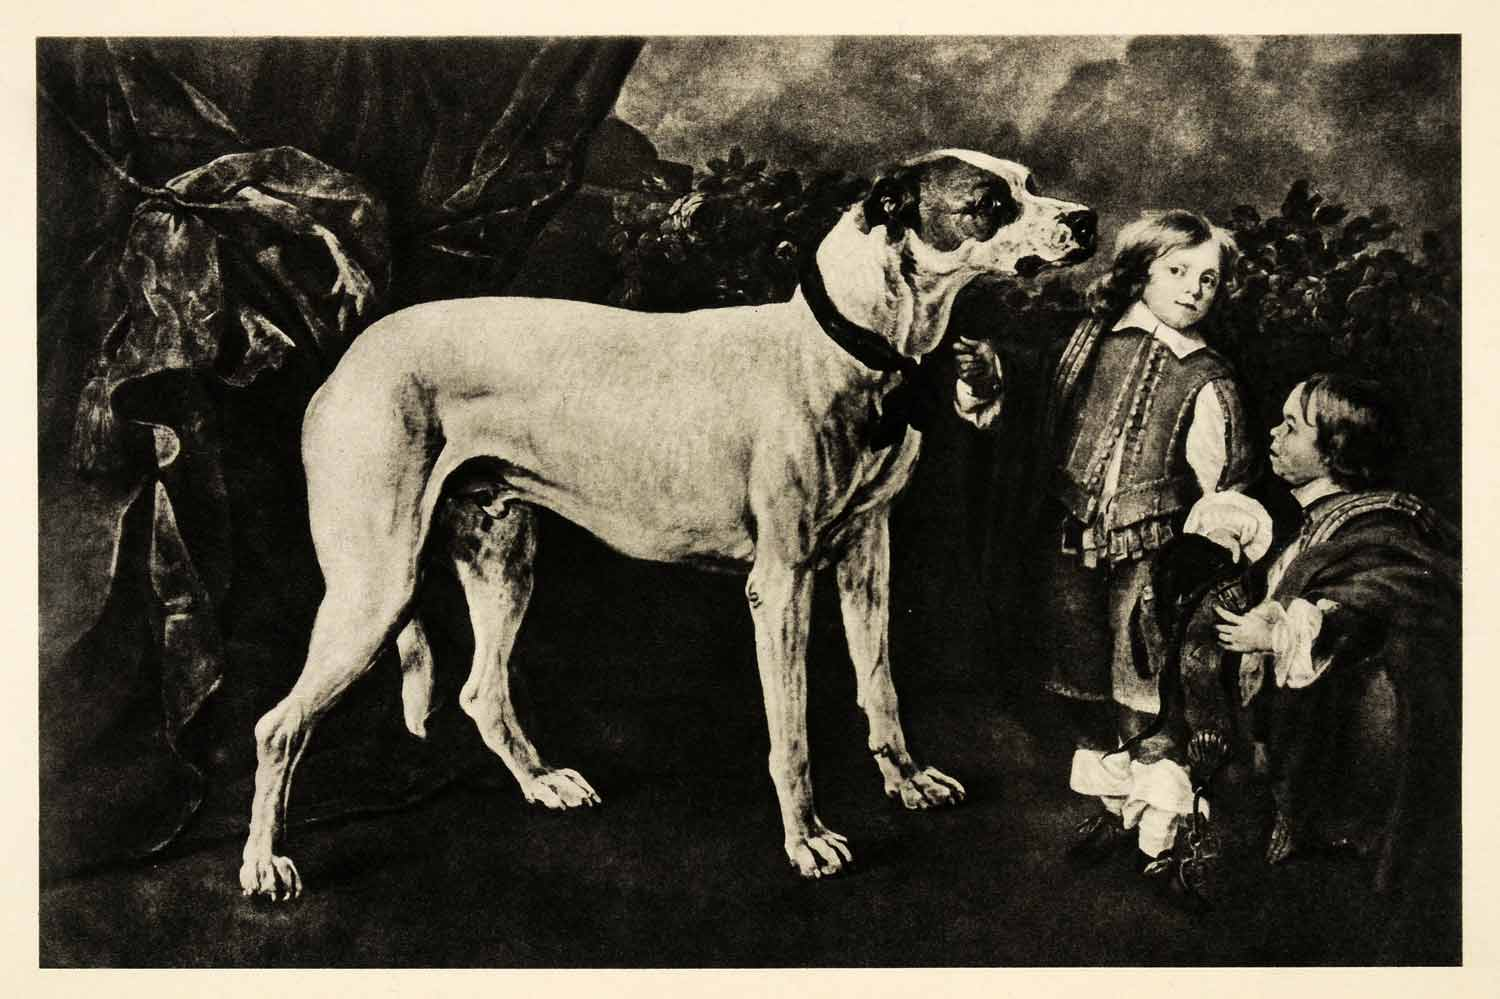 1939 Photogravure Jan Fyt Big Dog Dwarf Boy Child Pet Animal Canine Pet XAG5